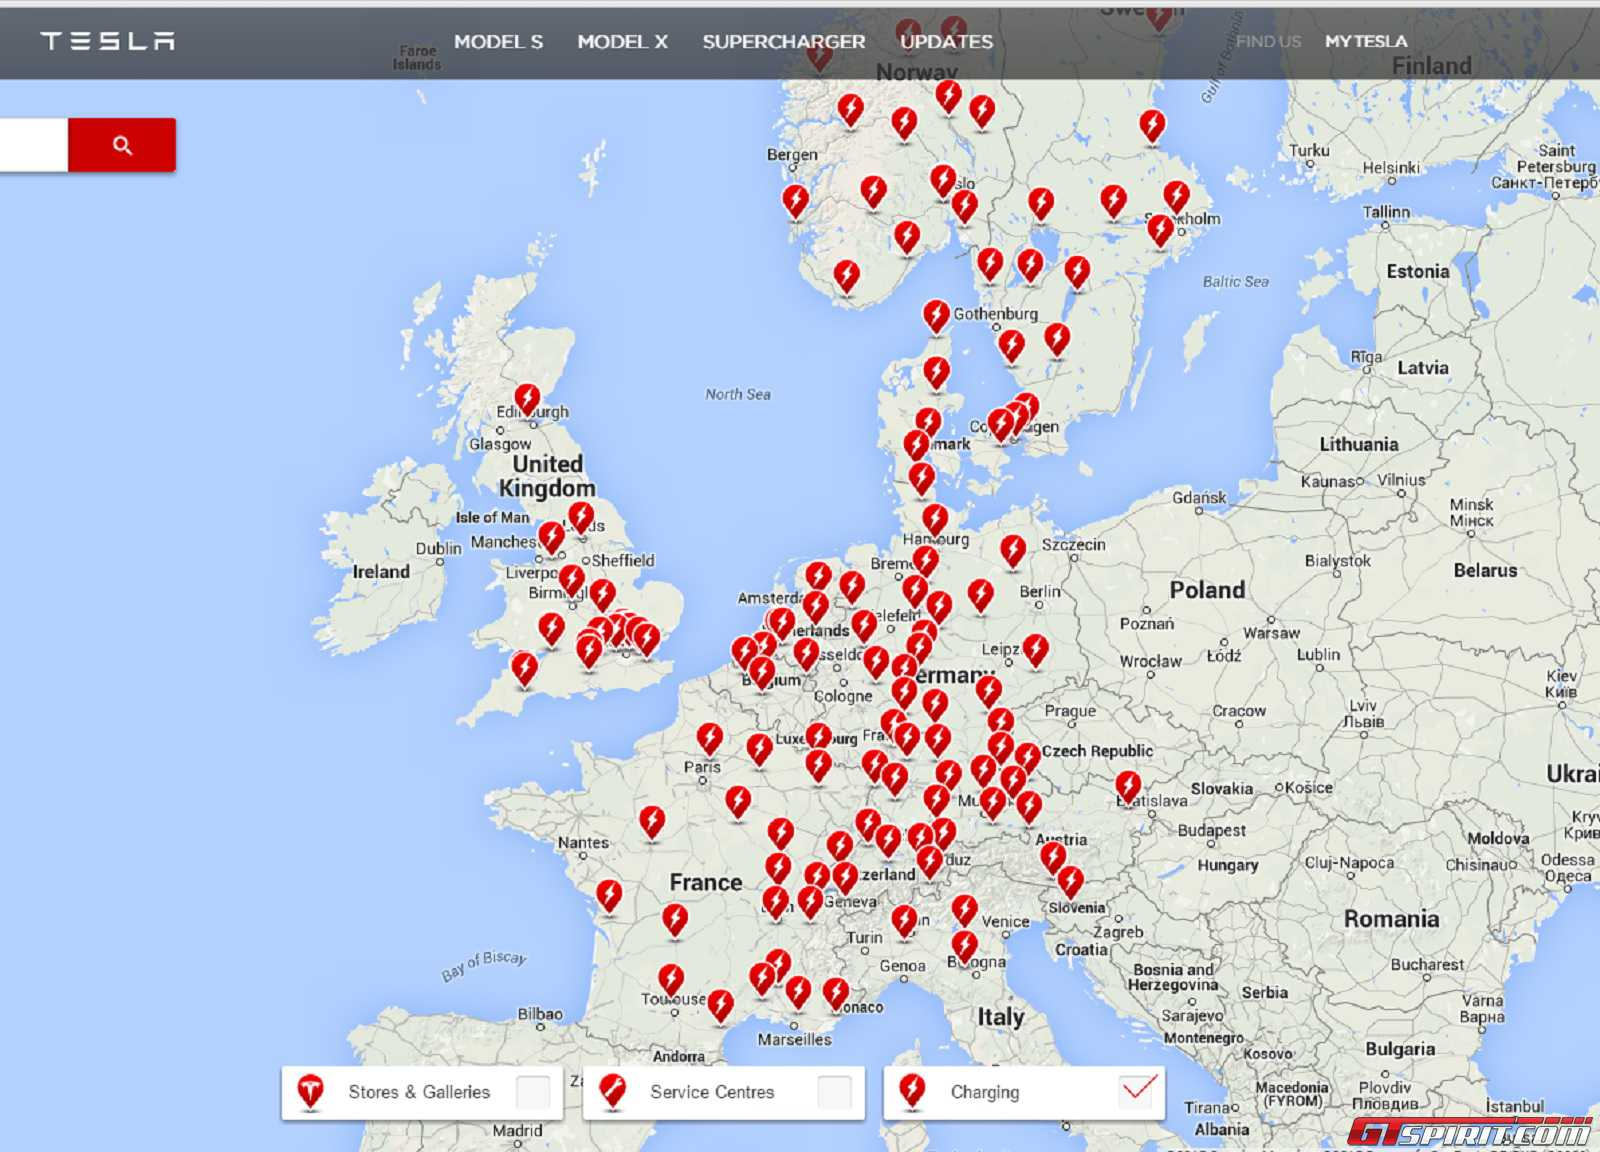 map shows the booming network of superchargers in eu